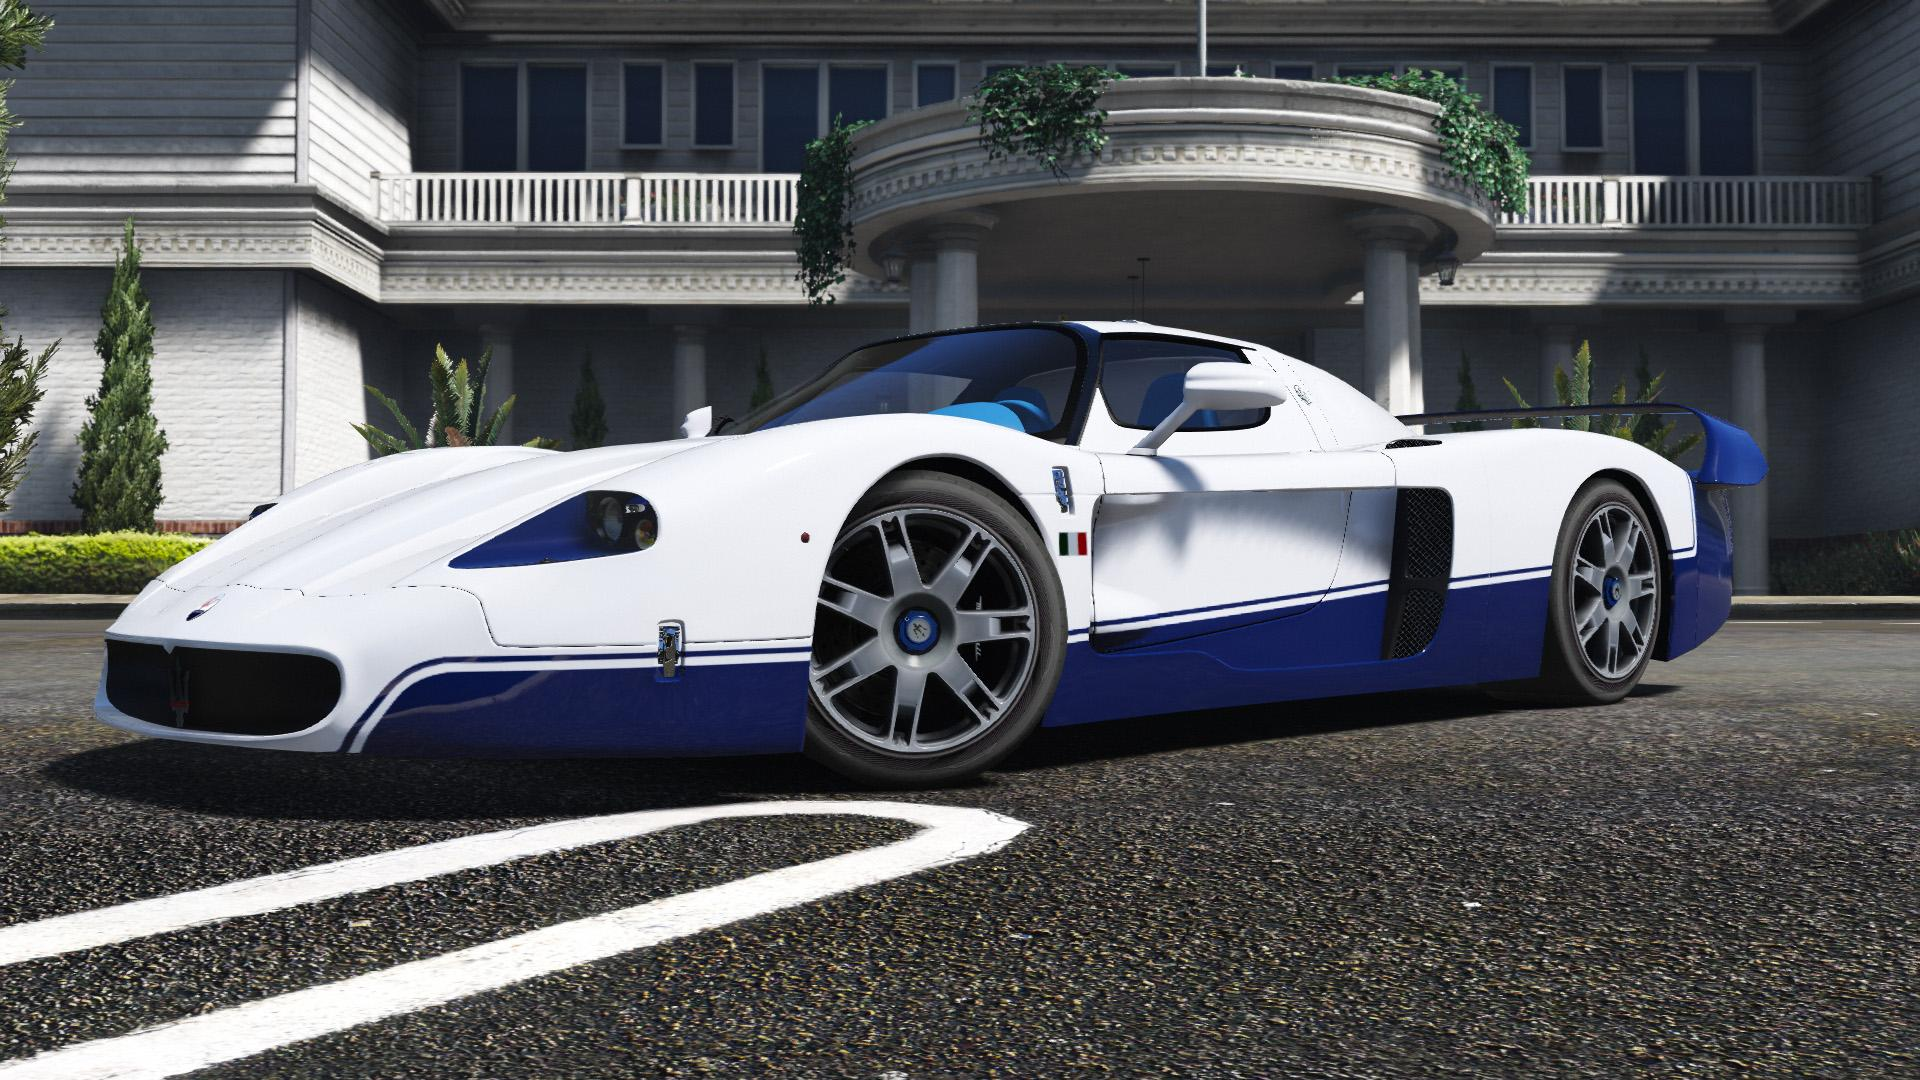 maserati mc12 add on tuning template gta5. Black Bedroom Furniture Sets. Home Design Ideas